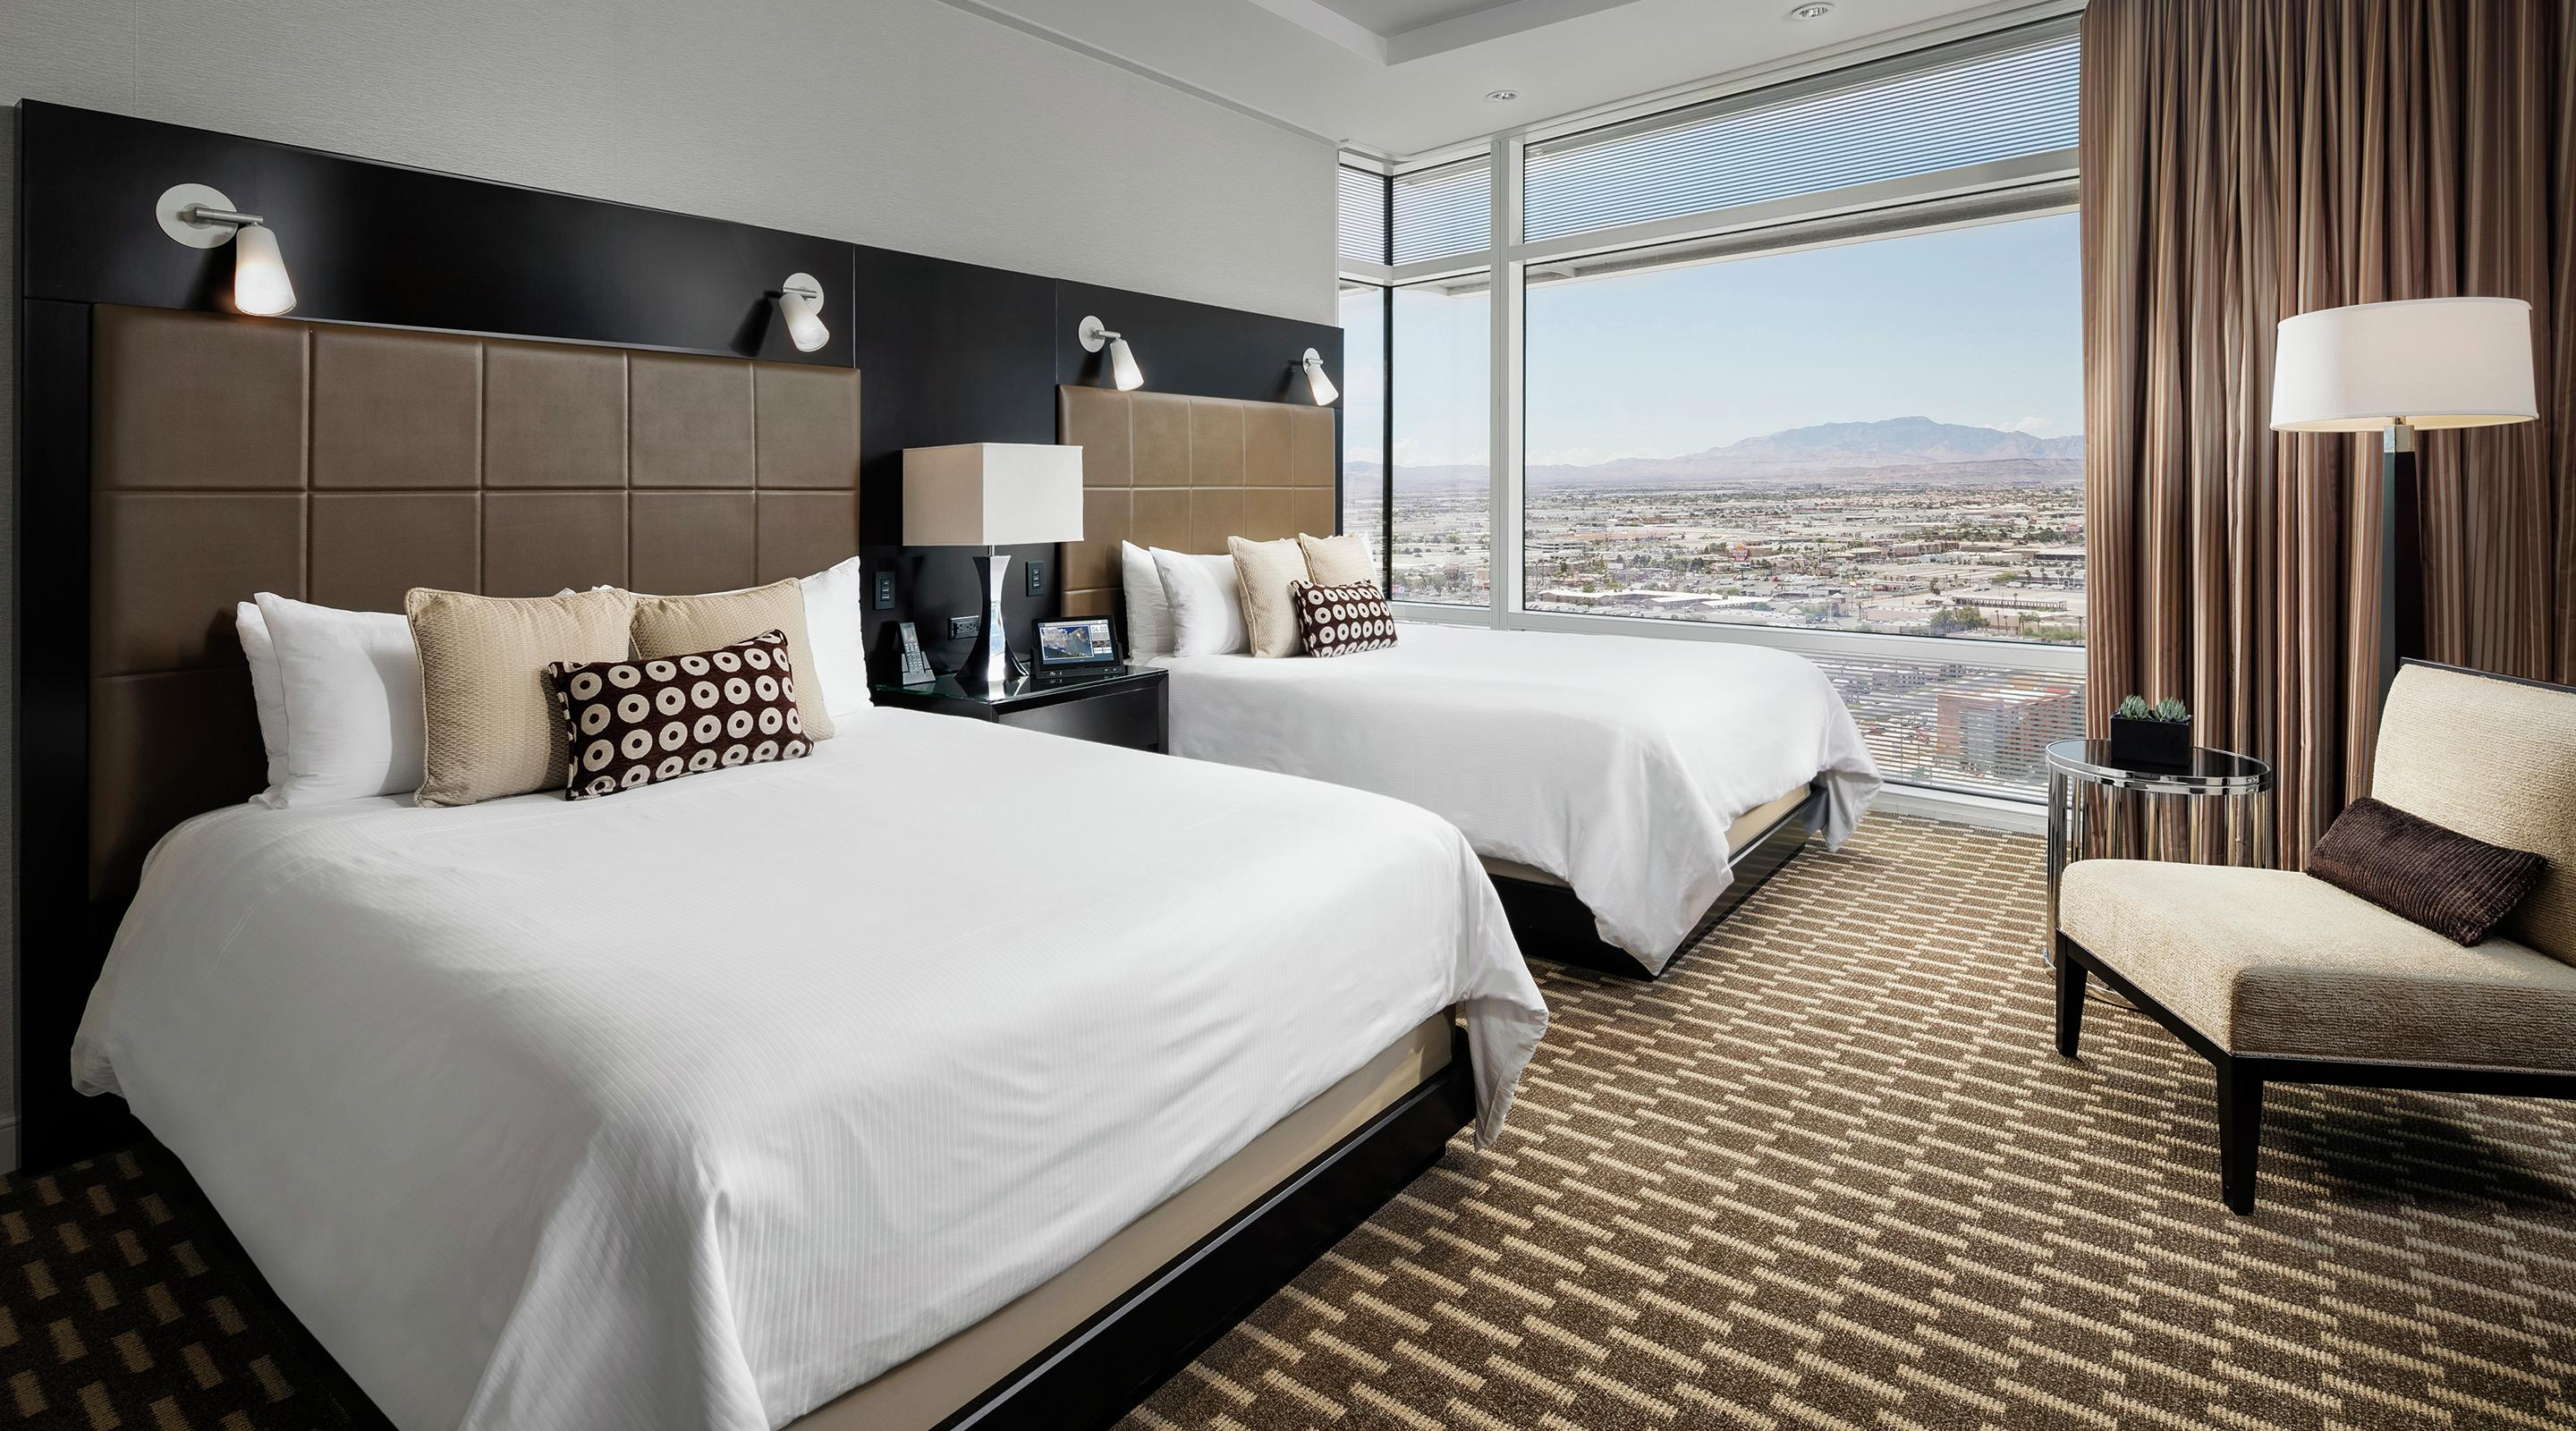 Approximately 1,050 square feet of sheer opulence. Our one-touch, in-room technology. And, of course, stunning views through the floor-to-ceiling windows.